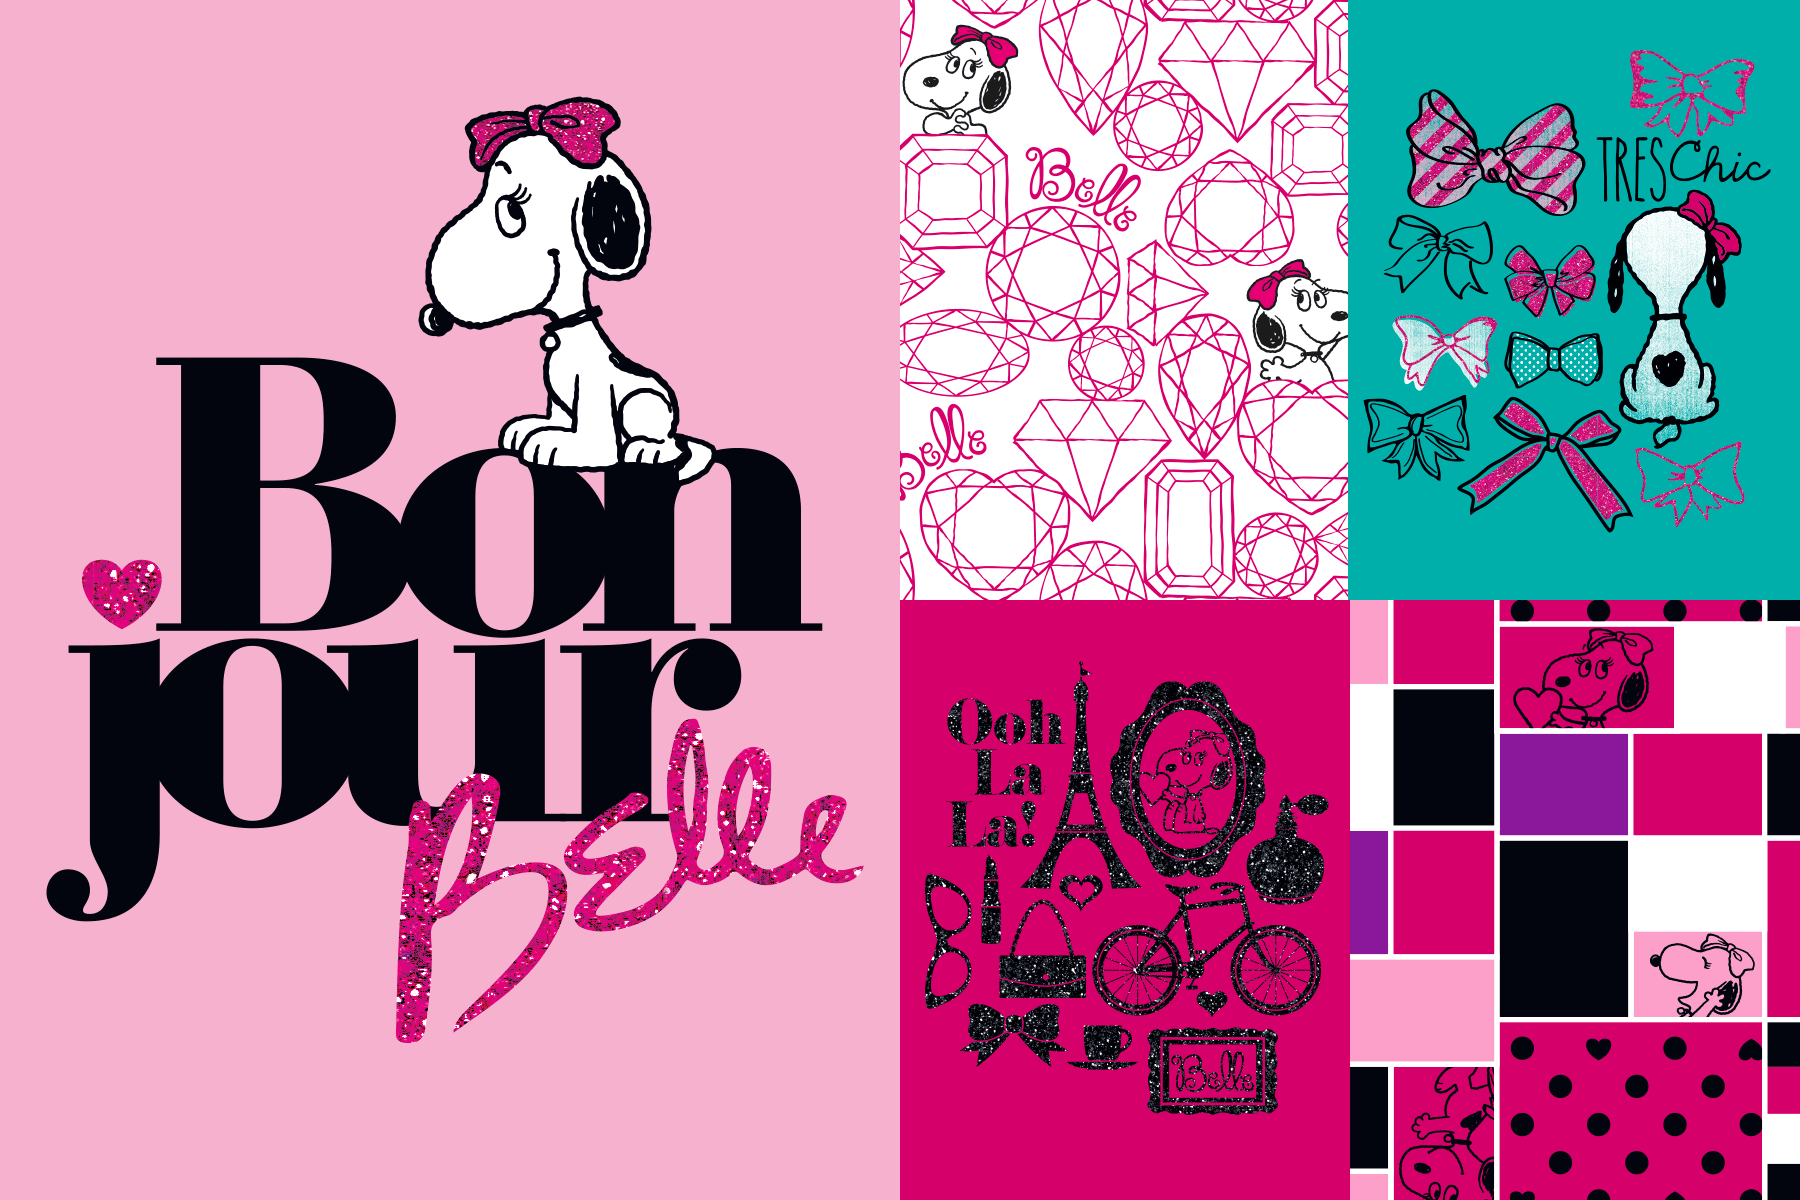 Snoopy & Belle graphics